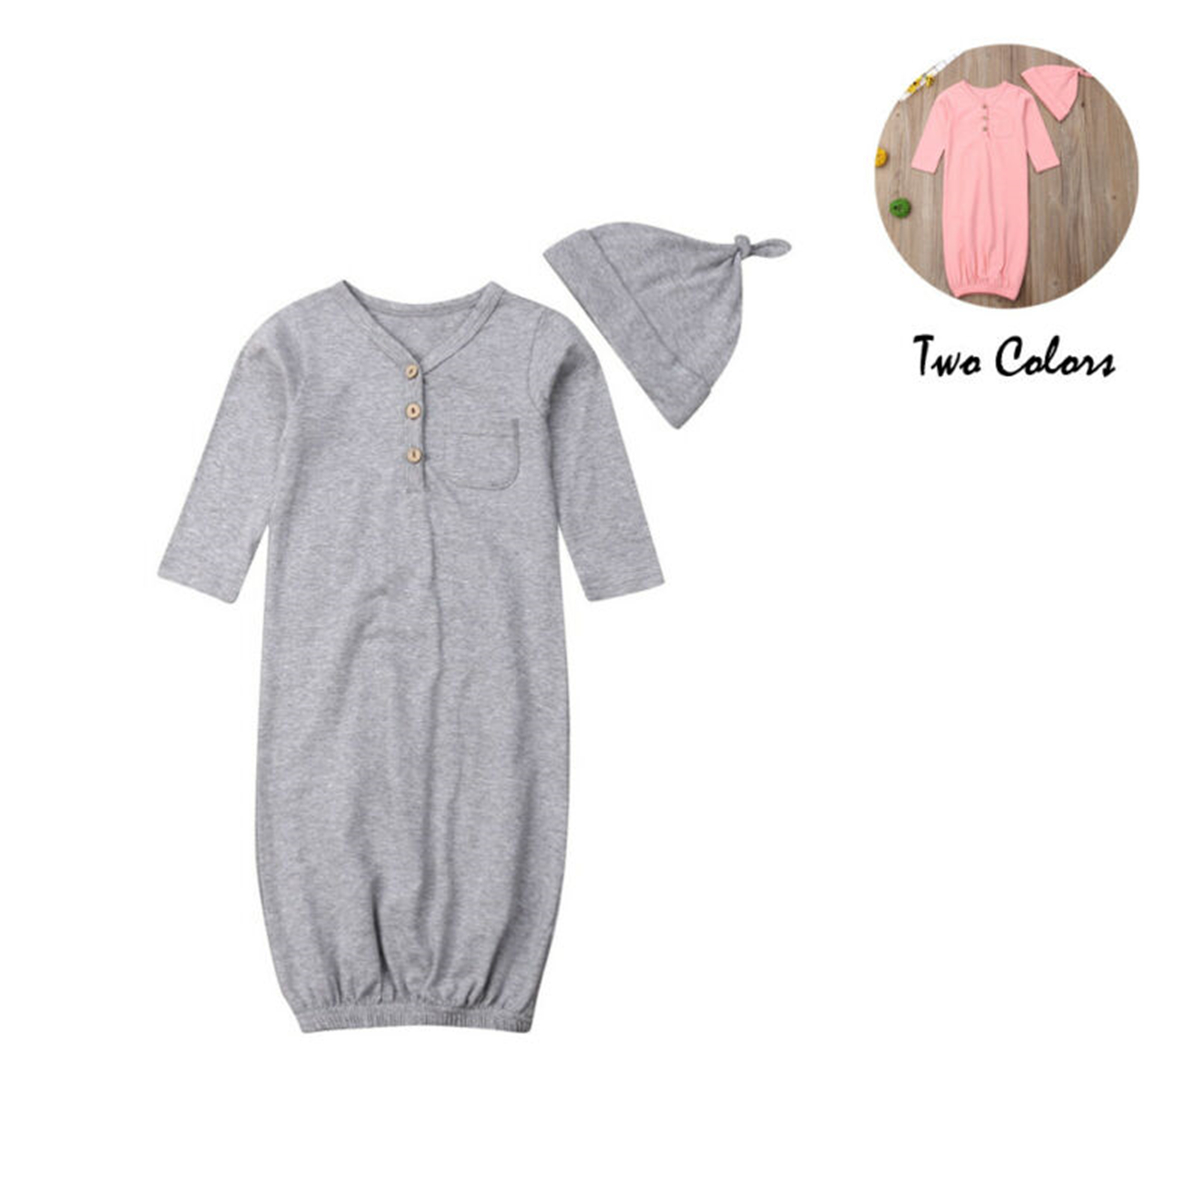 Soft Cotton Newborn Infant Baby Sleeping Bag Blanket Swaddle Wrap Toddler Infant Bedding Clothes Hat 2Pcs Outfit in Clothing Sets from Mother Kids